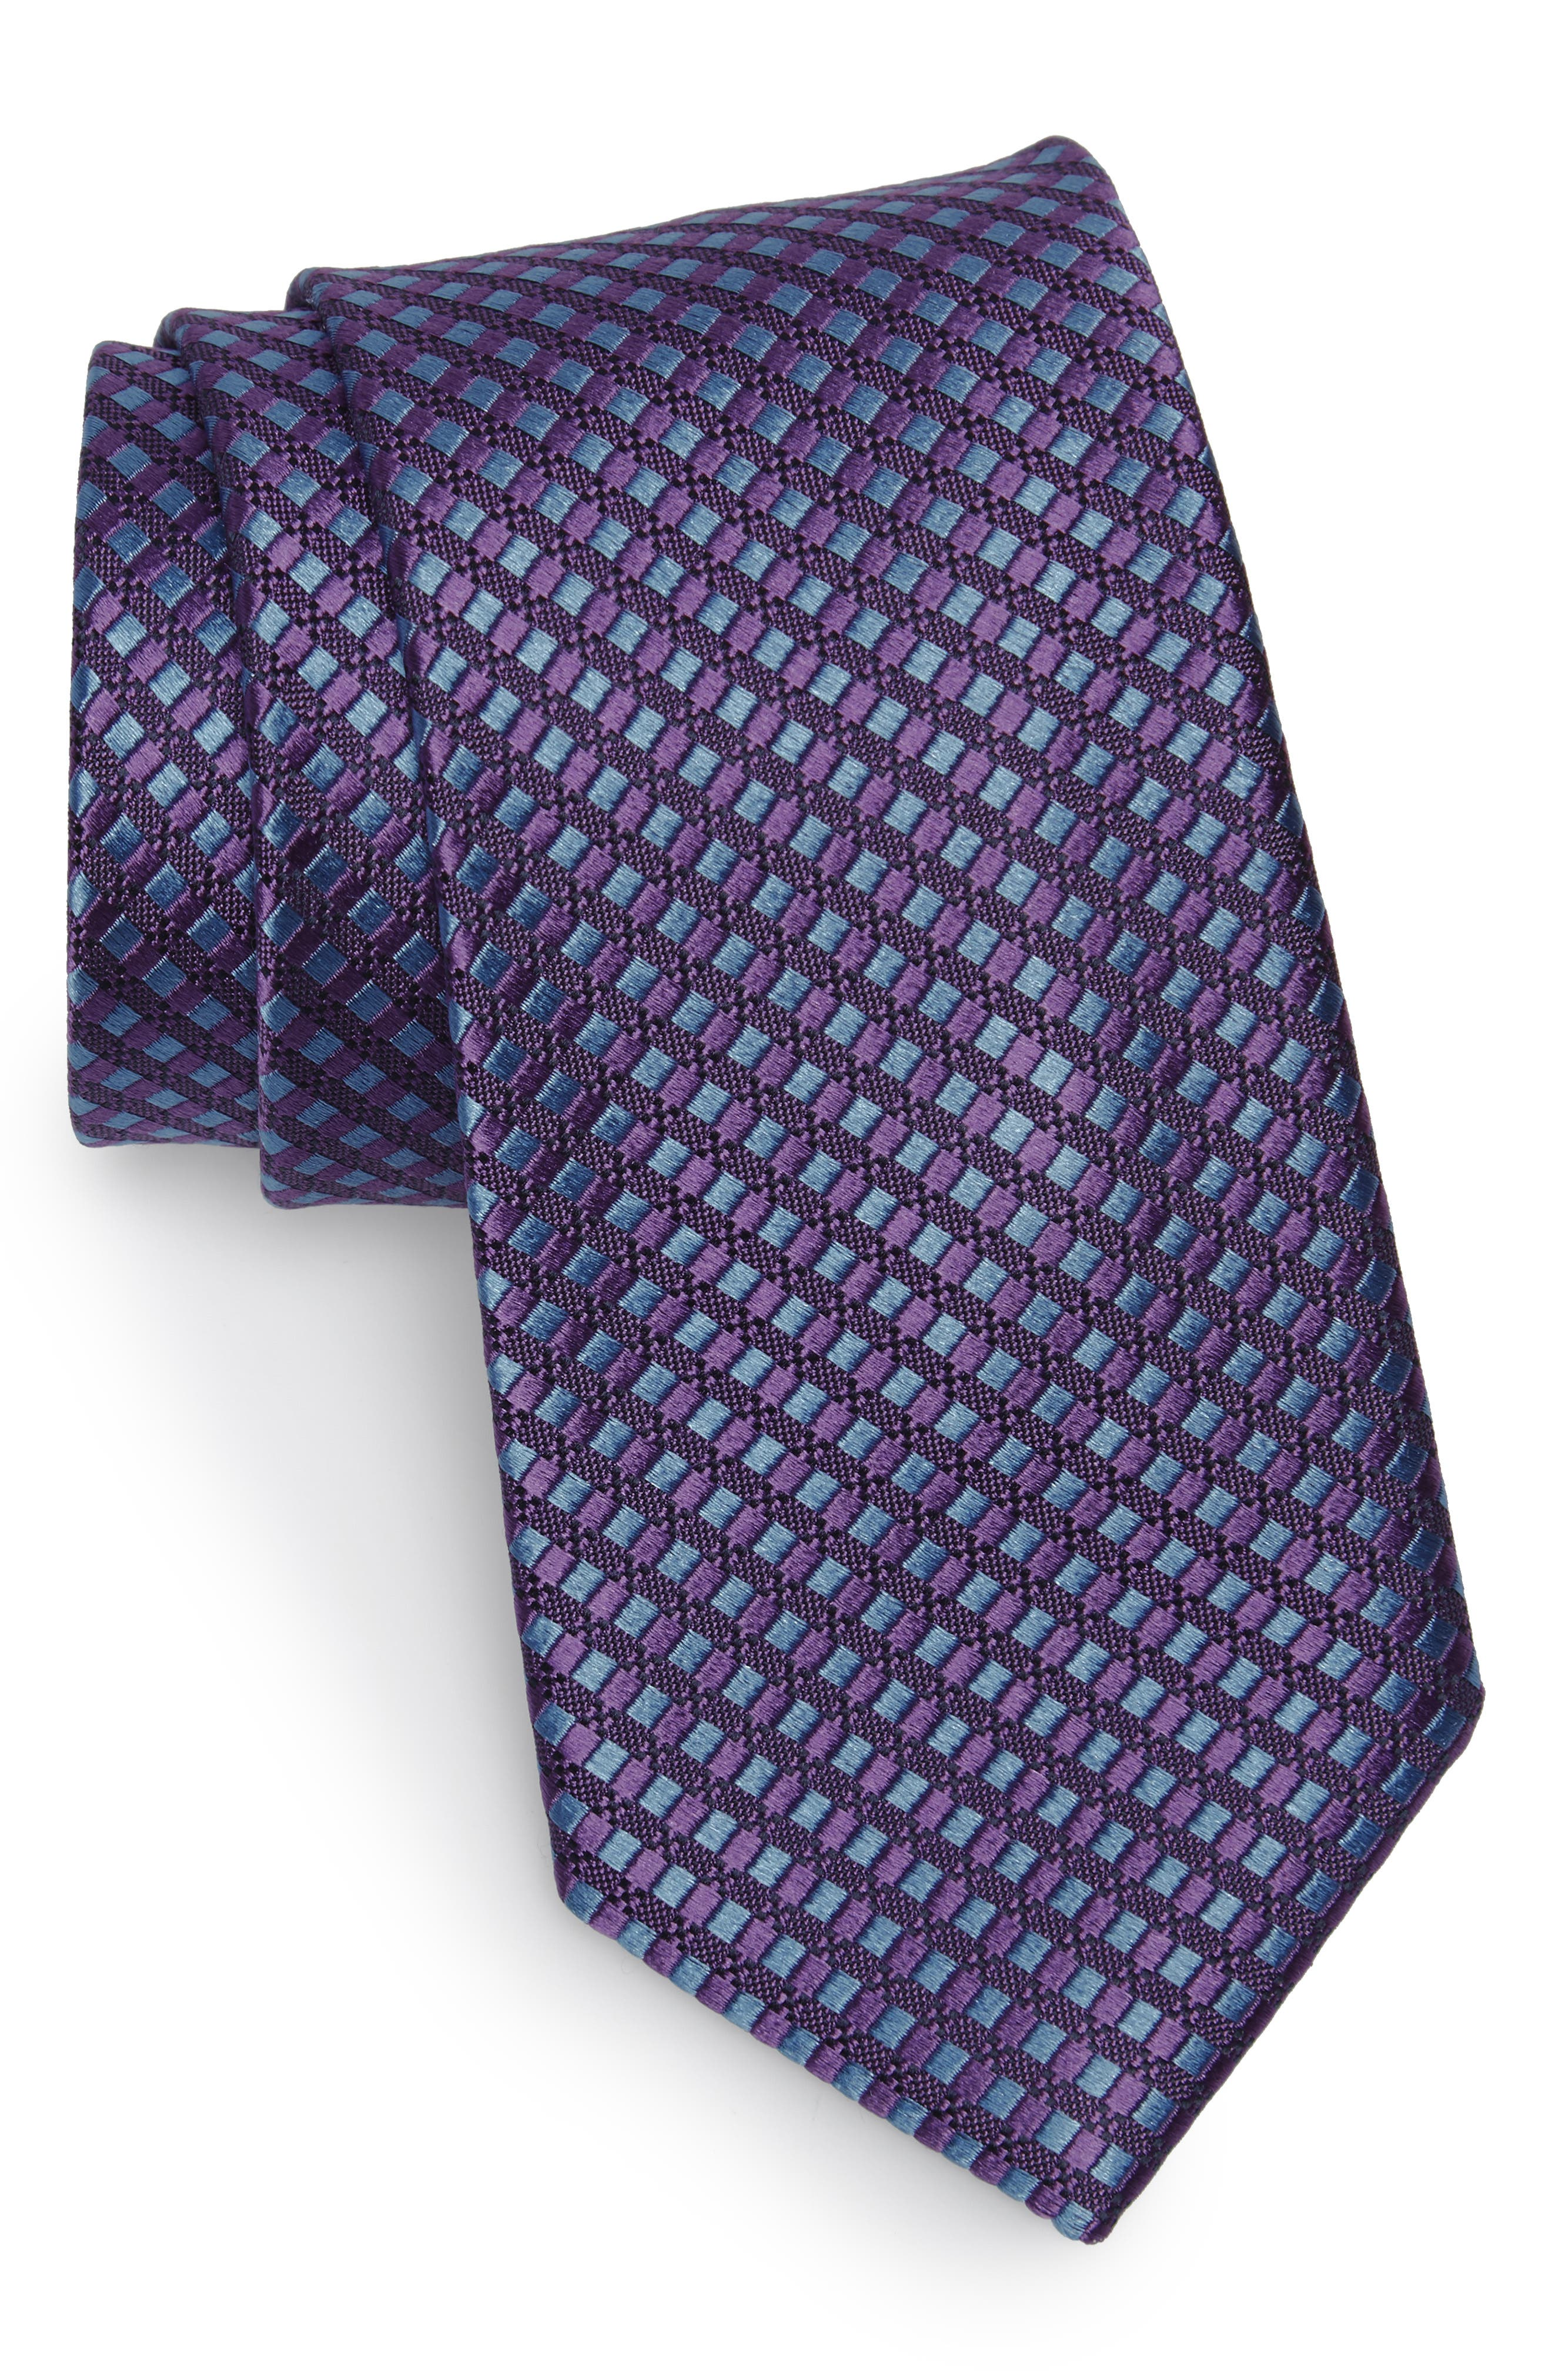 Alternate Image 1 Selected - Nordstrom Men's Shop Nathan Neat Silk Tie